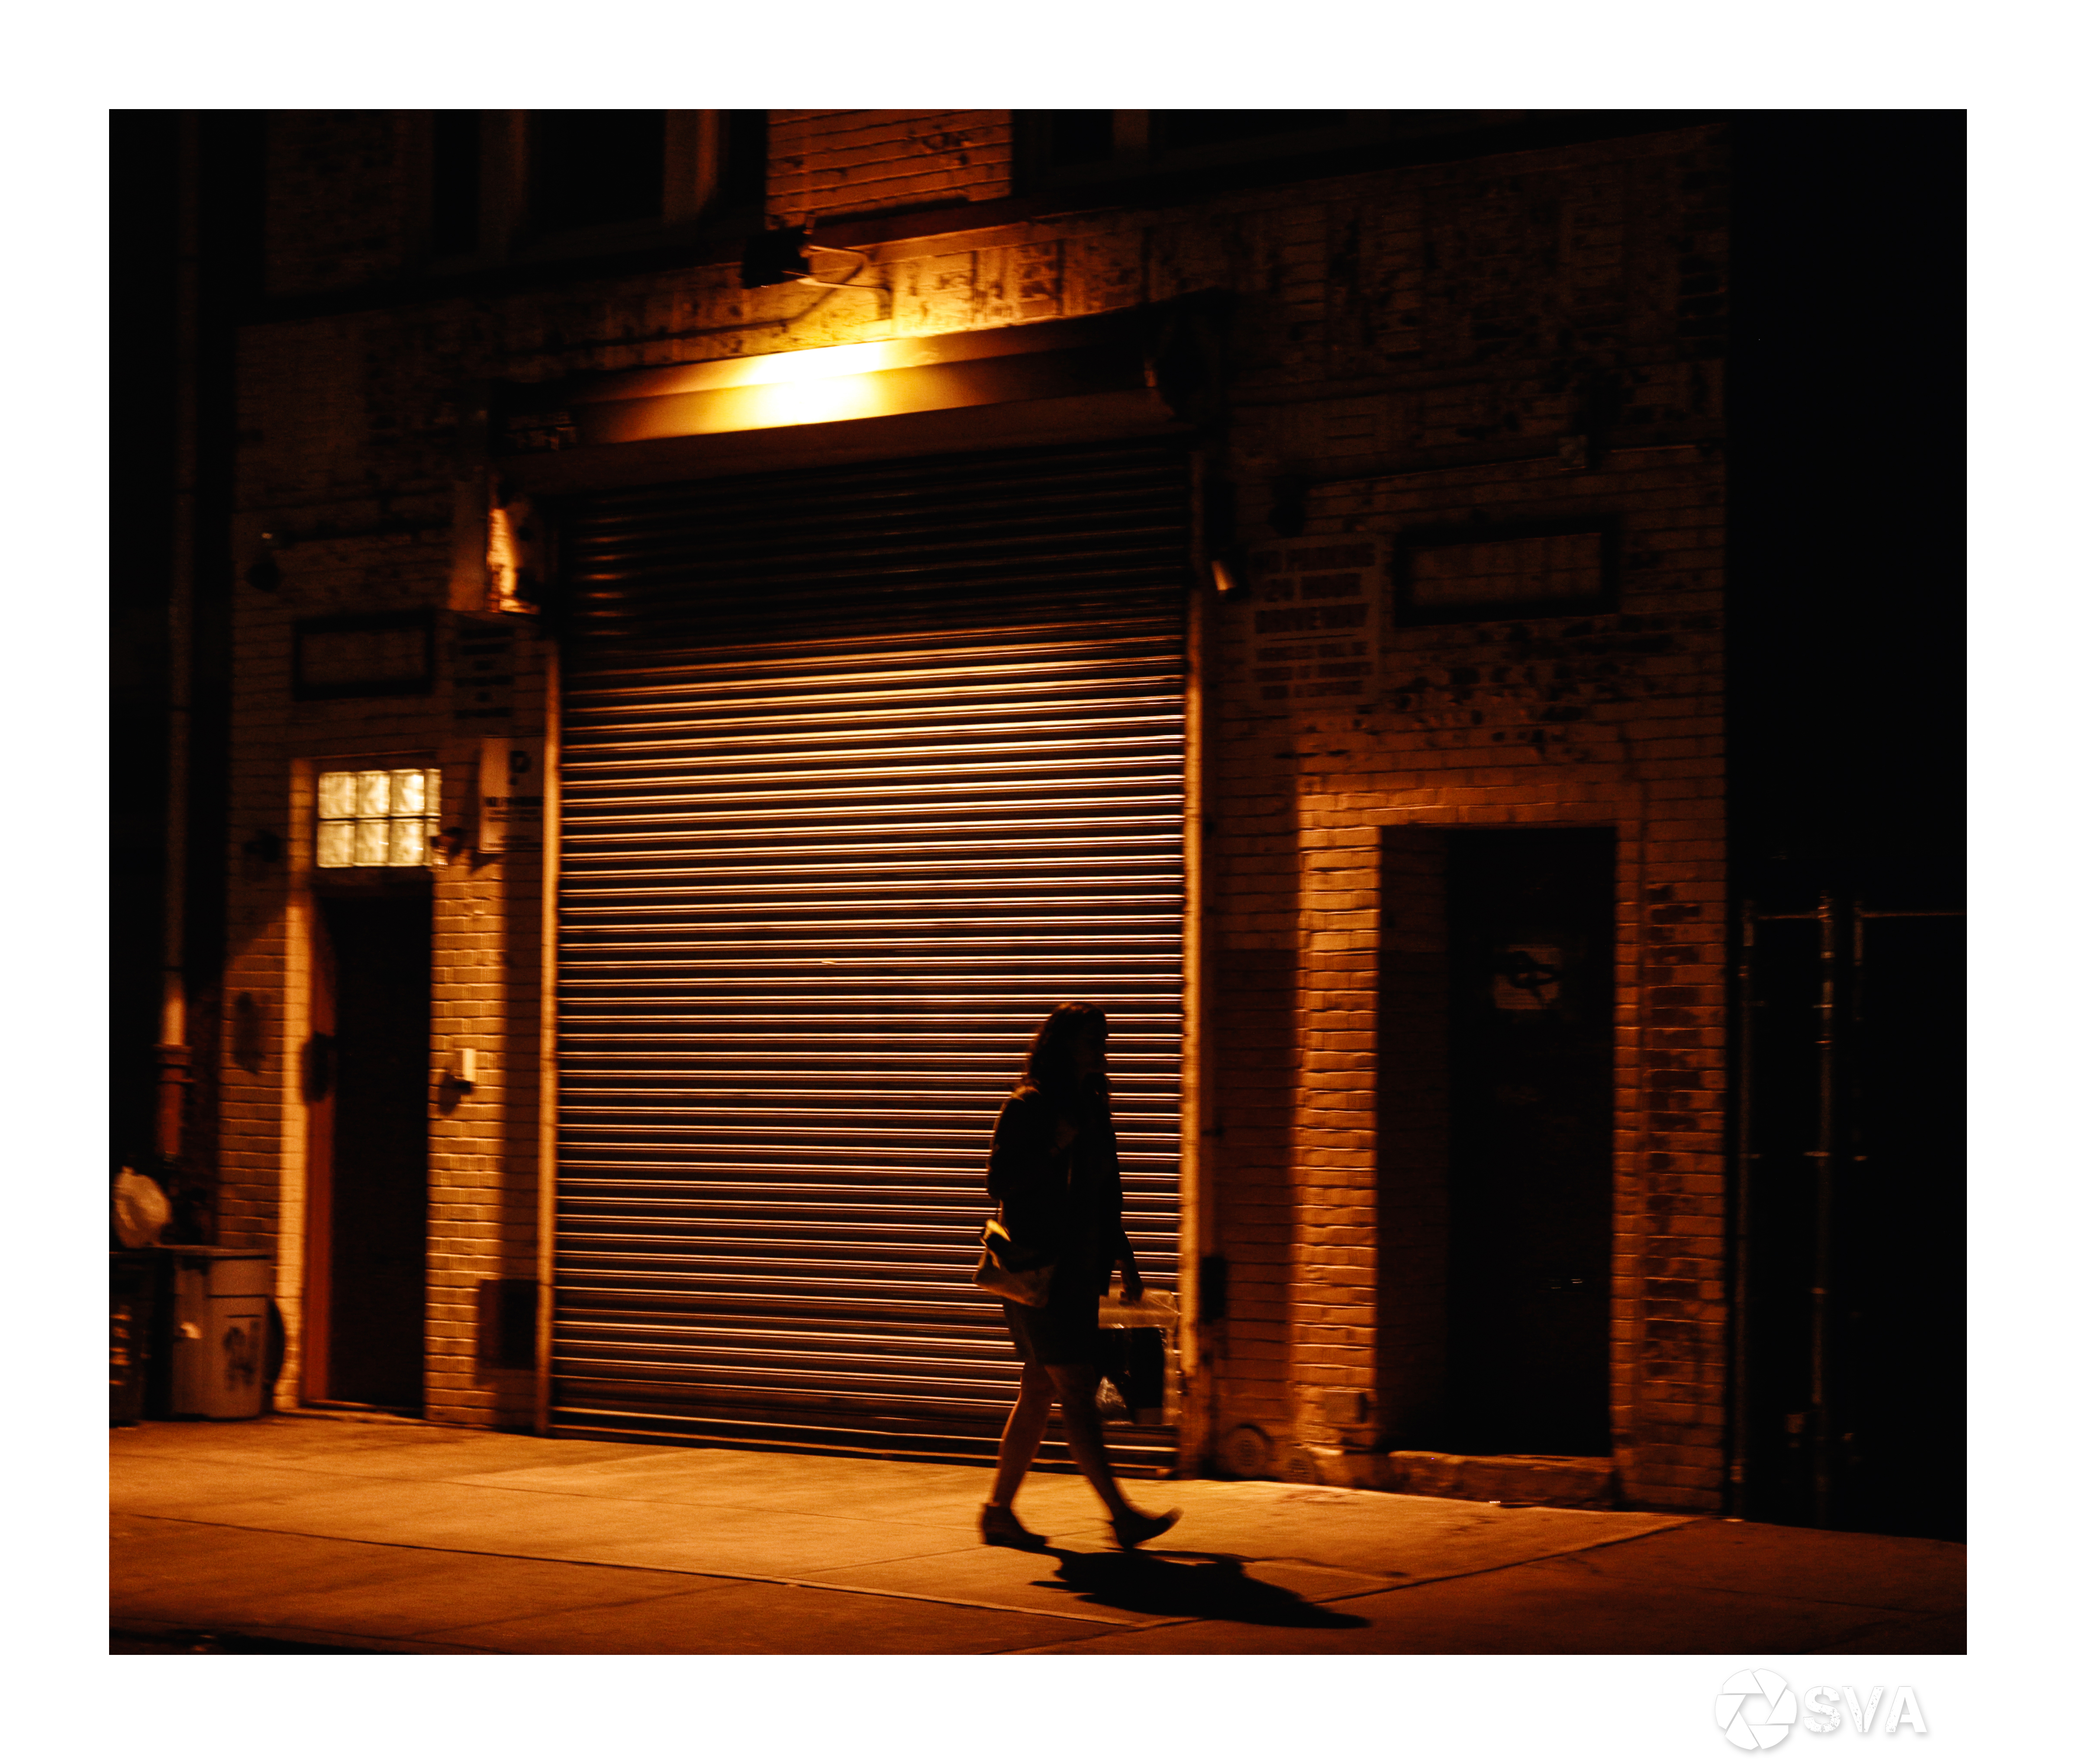 WDILNY_Day 2_Walking by night_Brooklyn